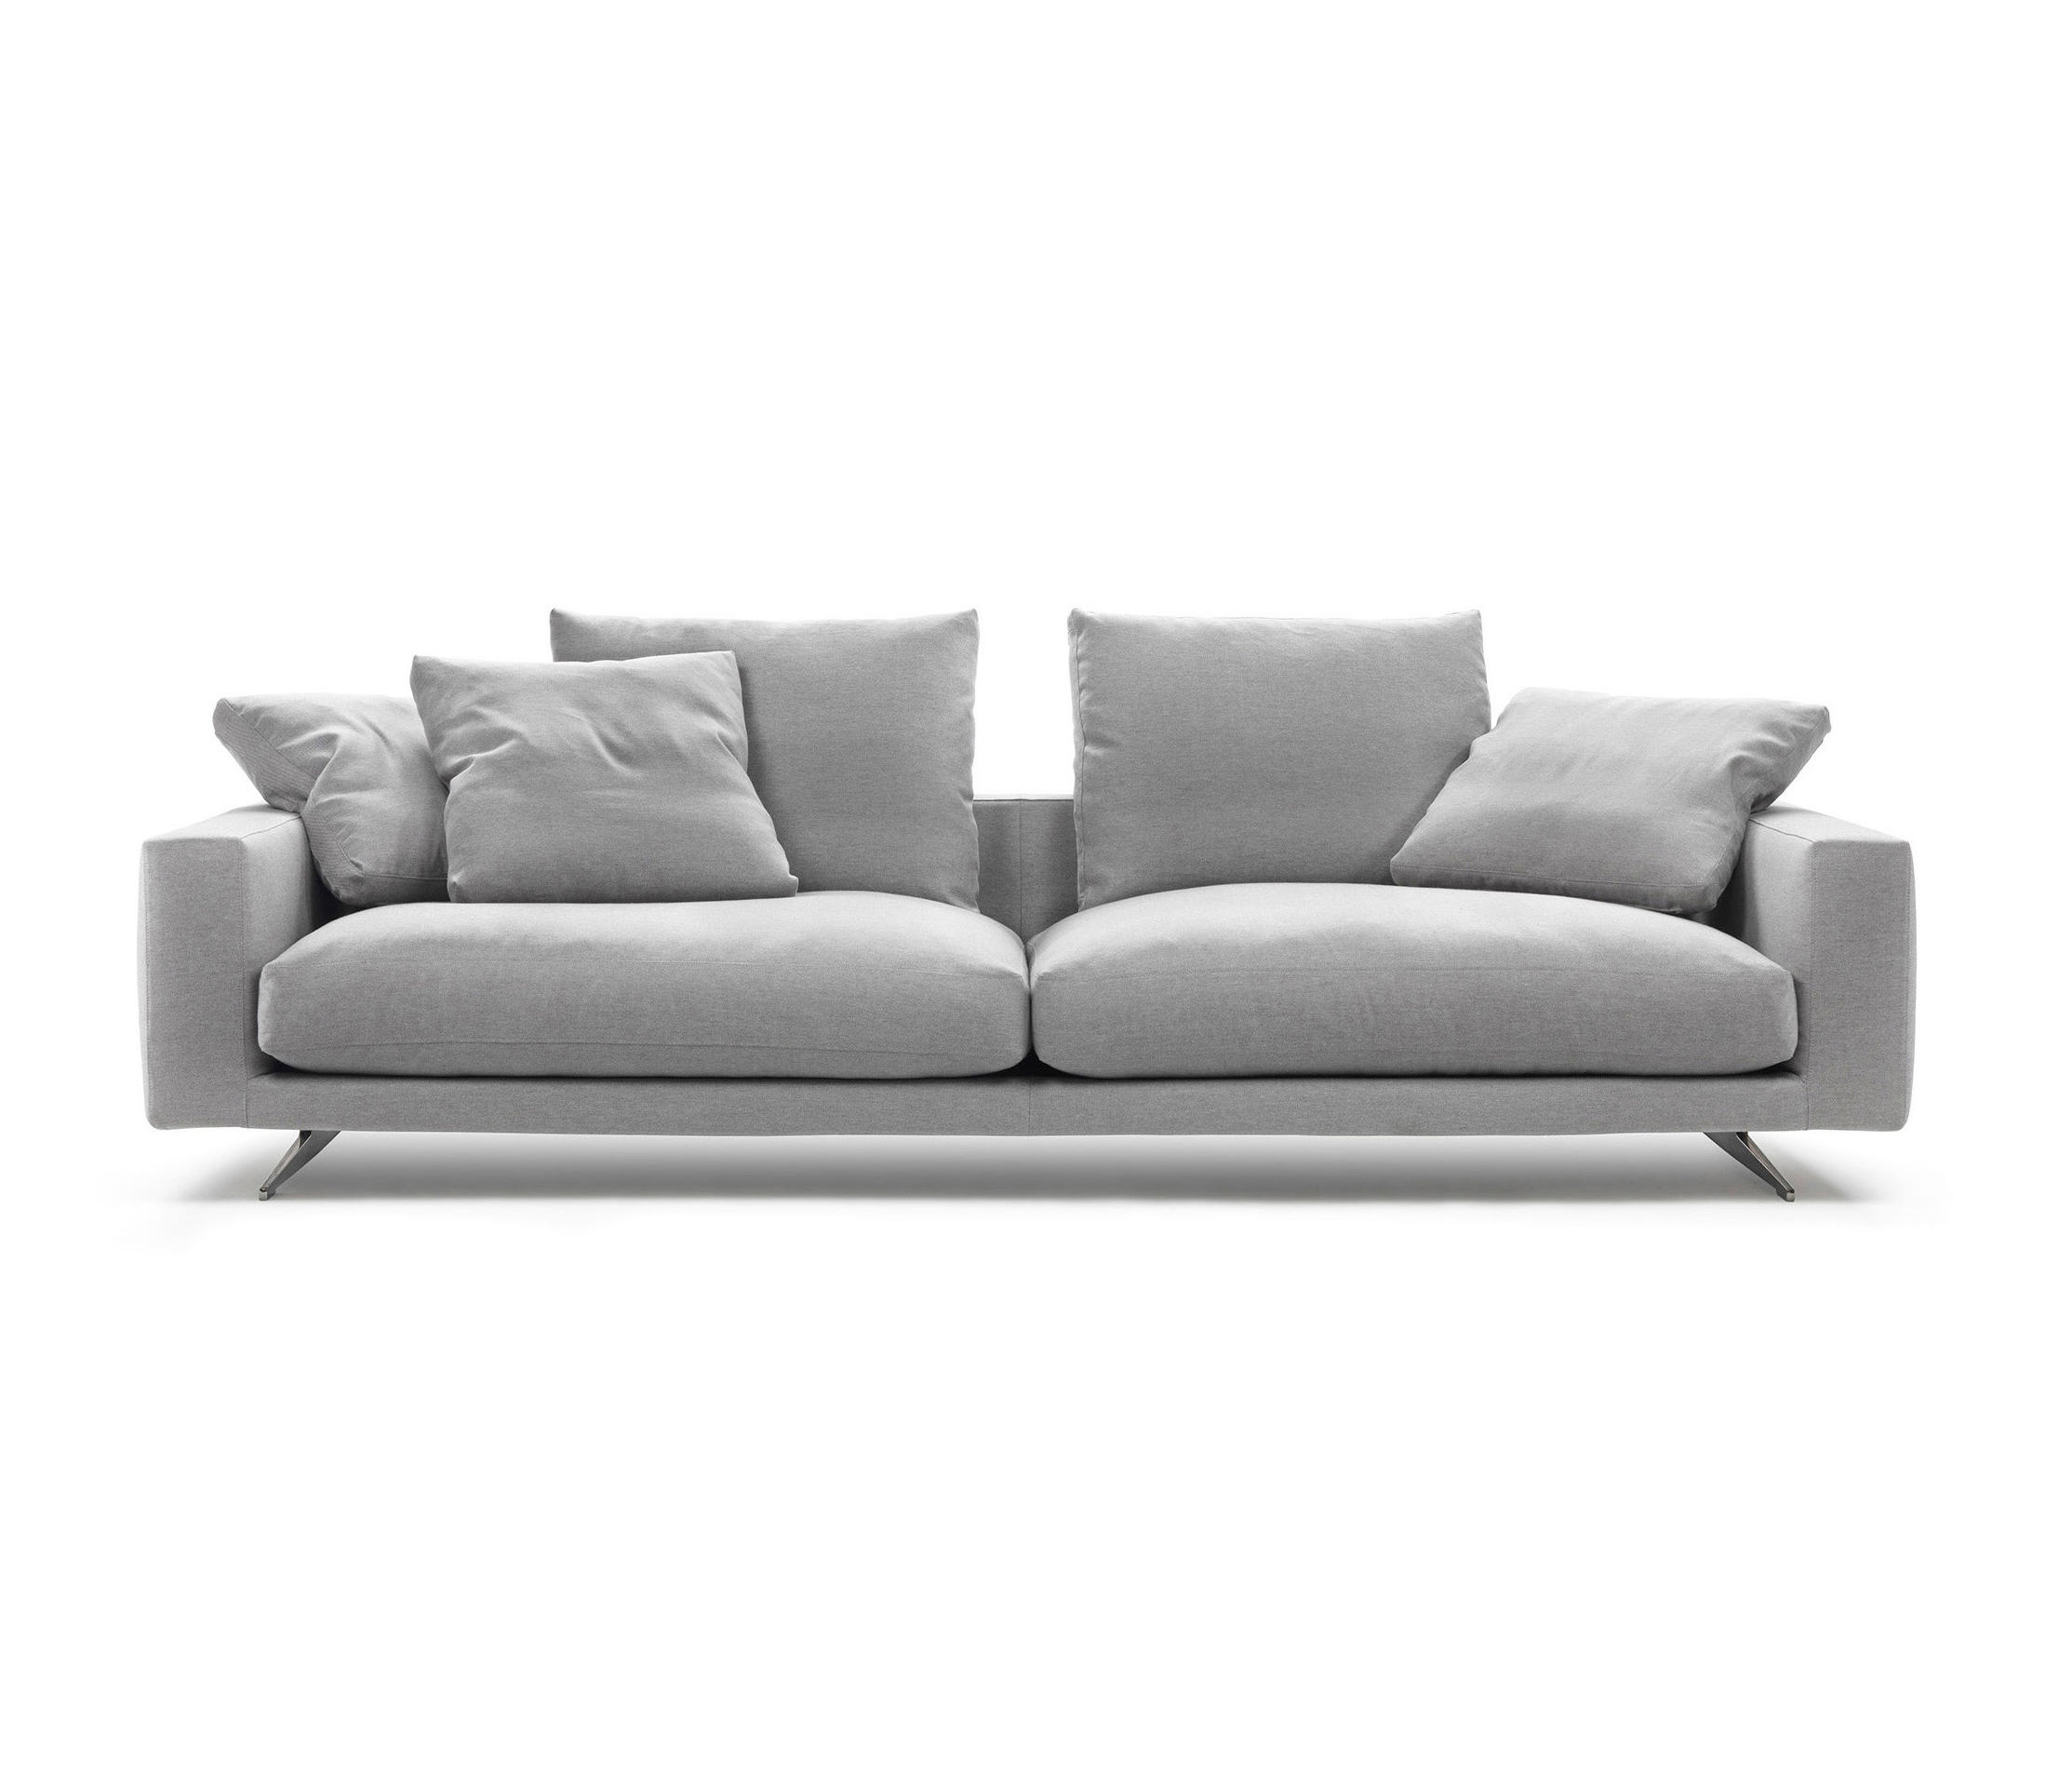 Astonishing Campiello Sofas From Flexform Architonic Pdpeps Interior Chair Design Pdpepsorg